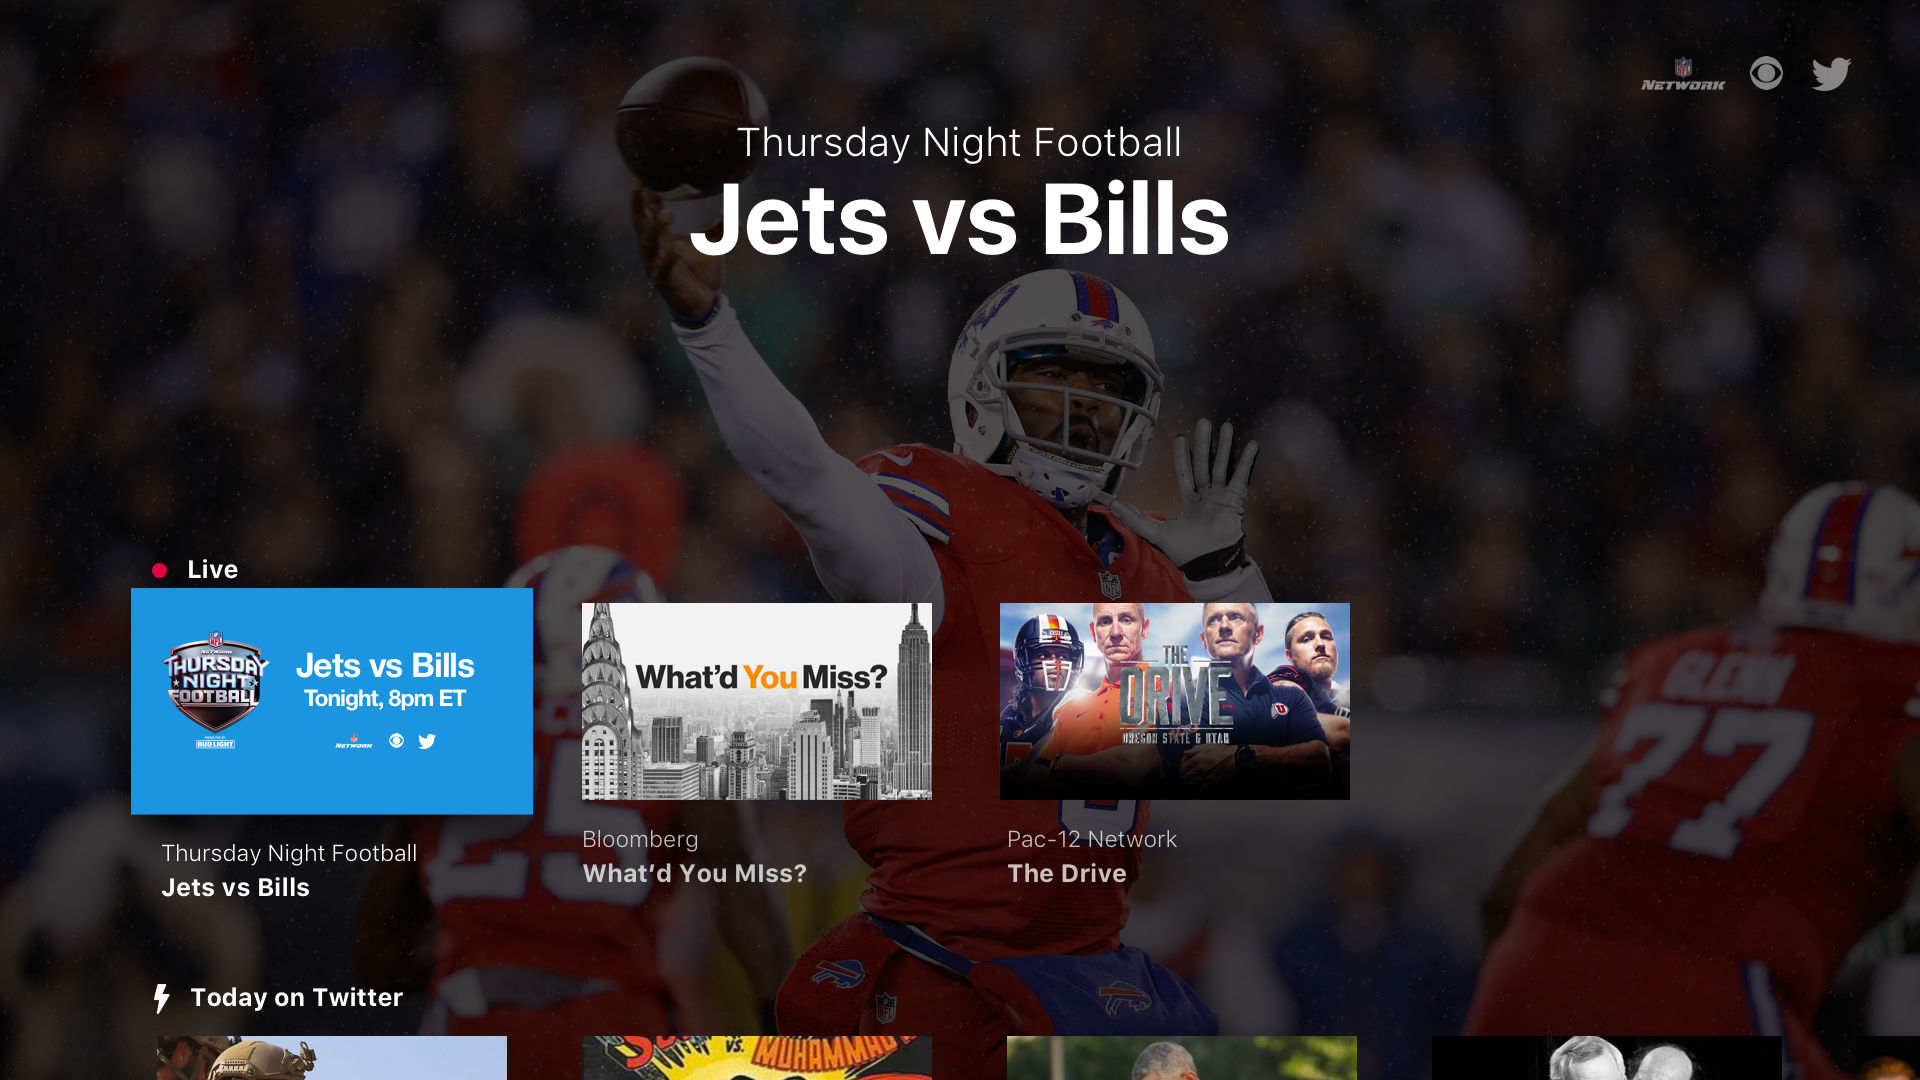 There are now a dozen or more ways to tune in to NFL games, including on mobile devices